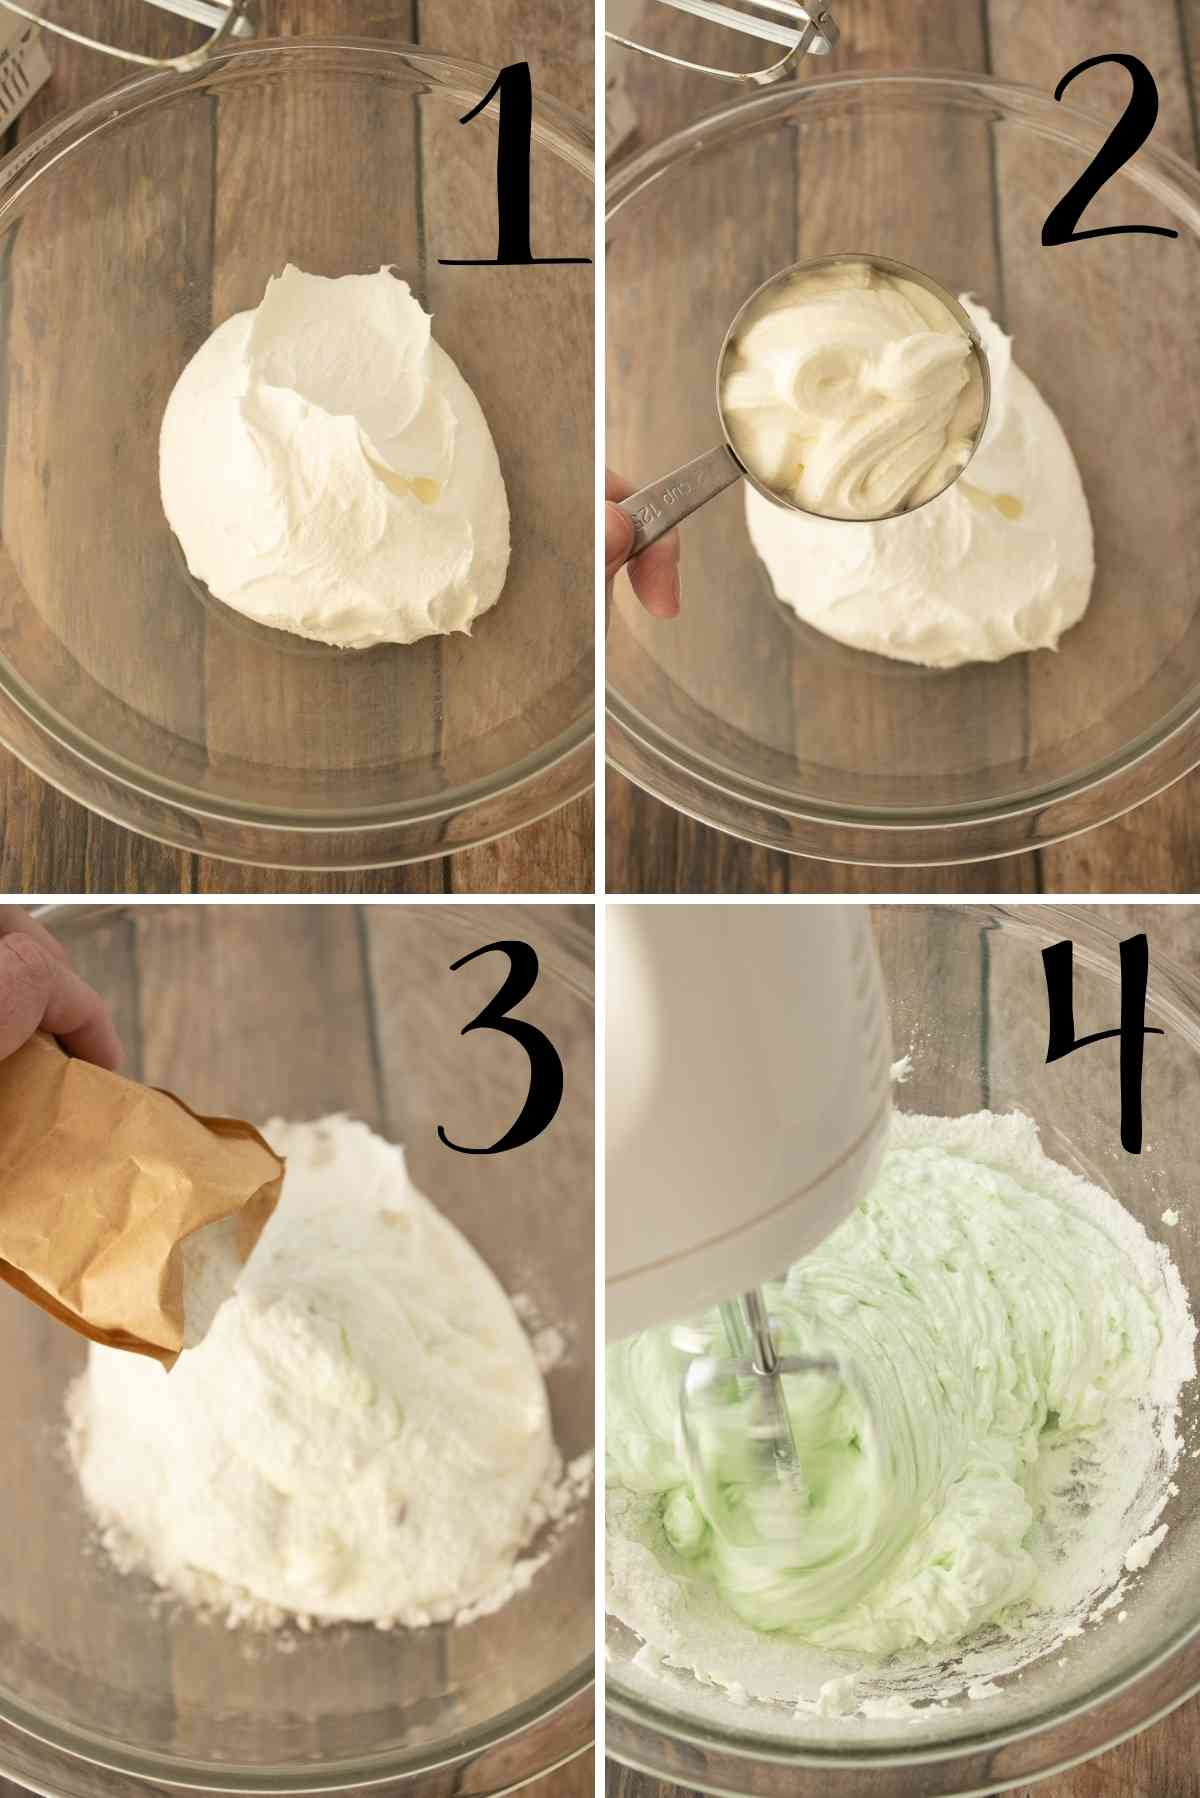 Beat cool whip, sour cream, and pudding mix together.